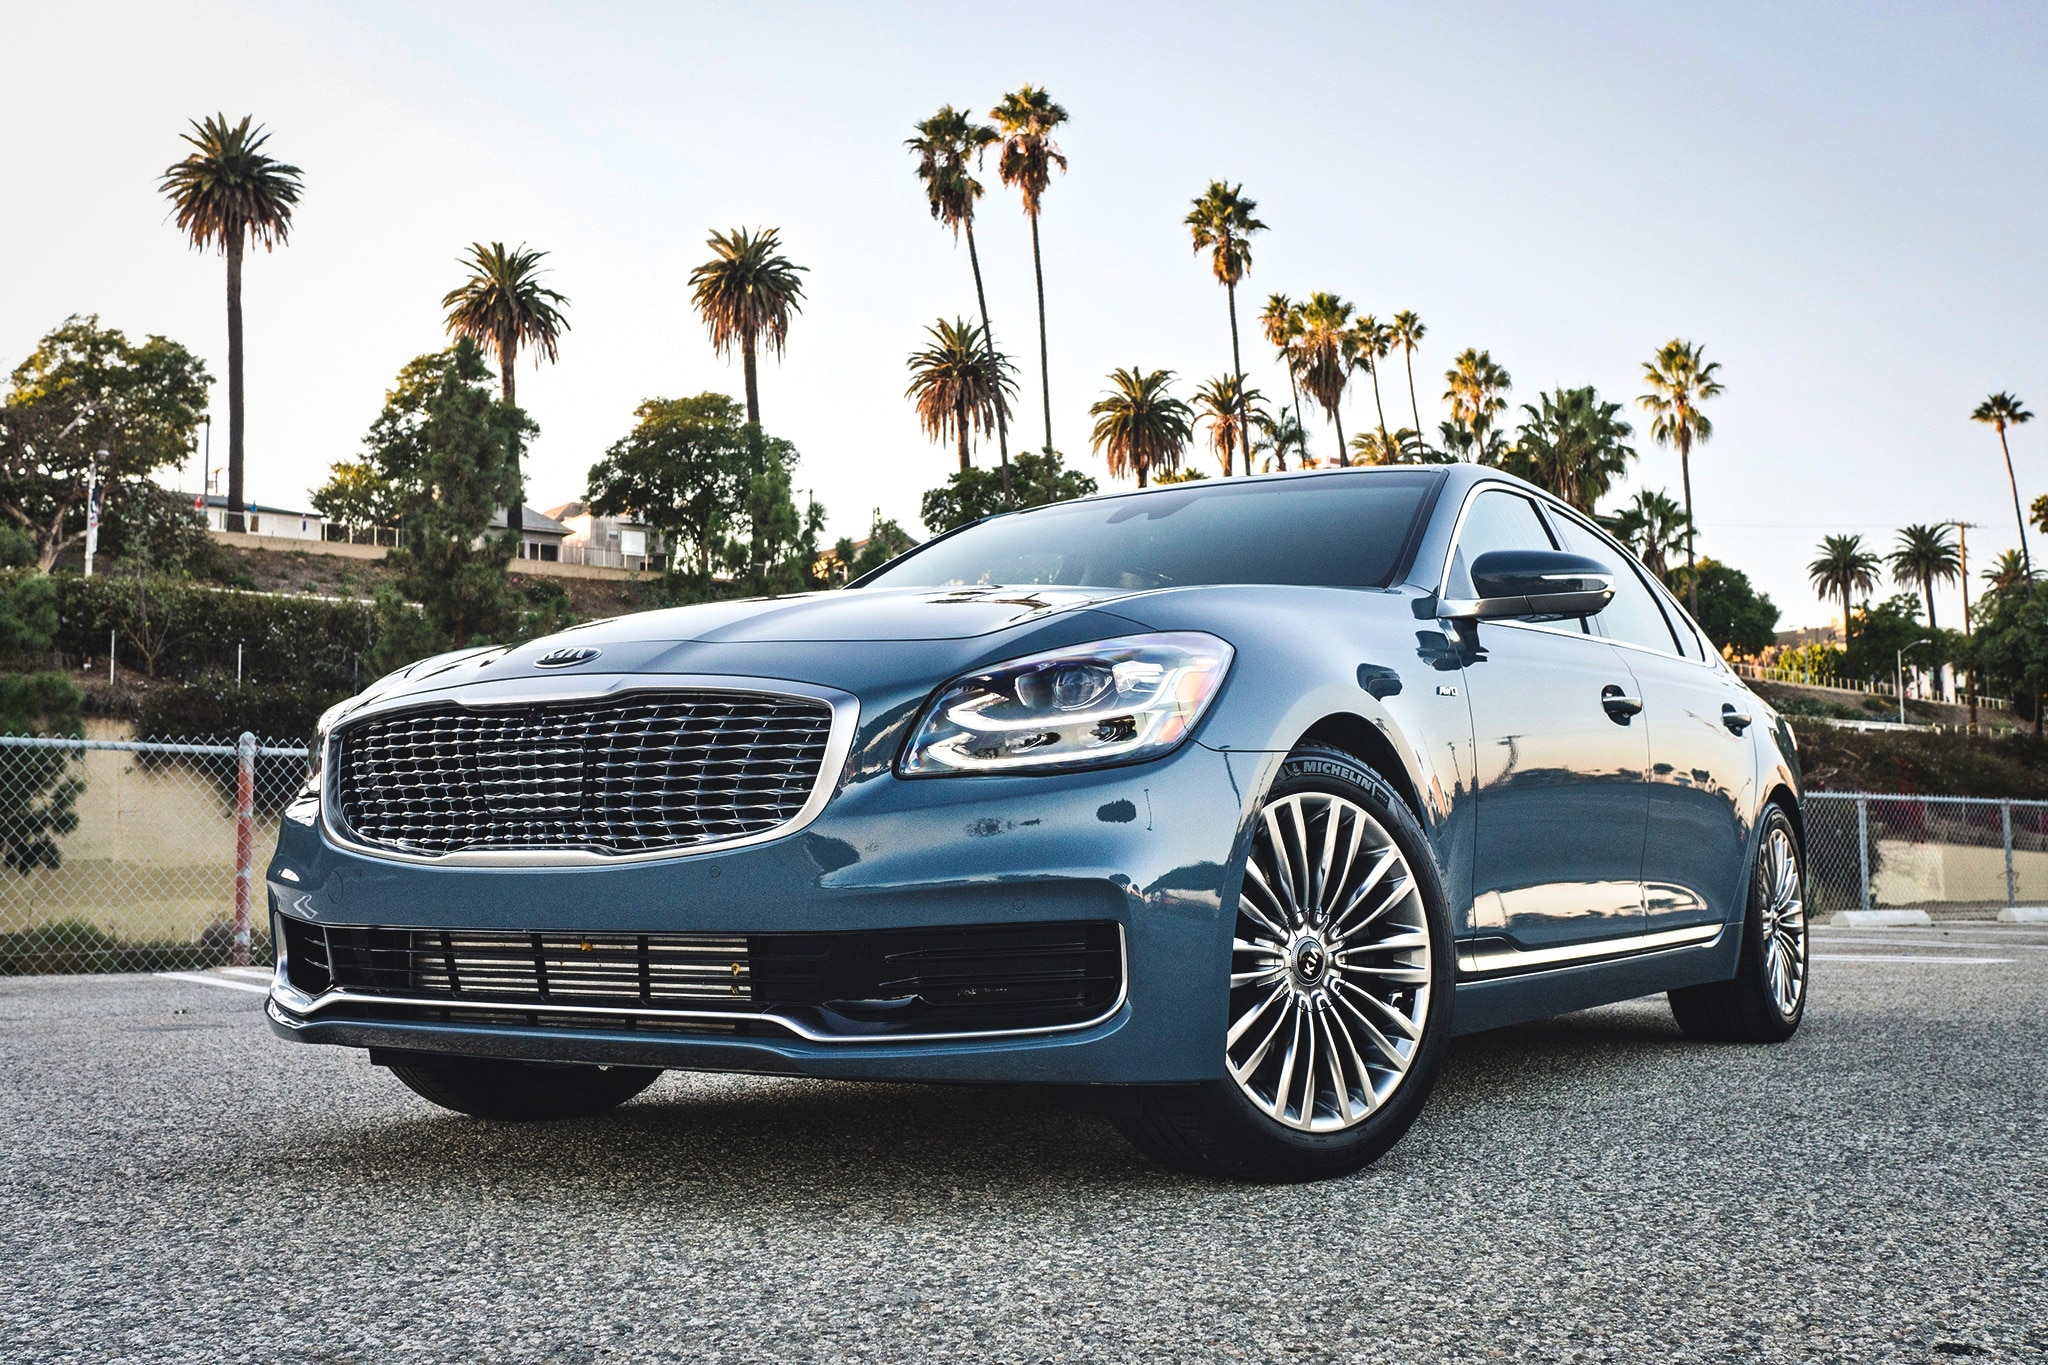 All New 2019 Kia K900 Preview: 10 Reasons Why The 2019 Kia K900 Is Way Better Than Before